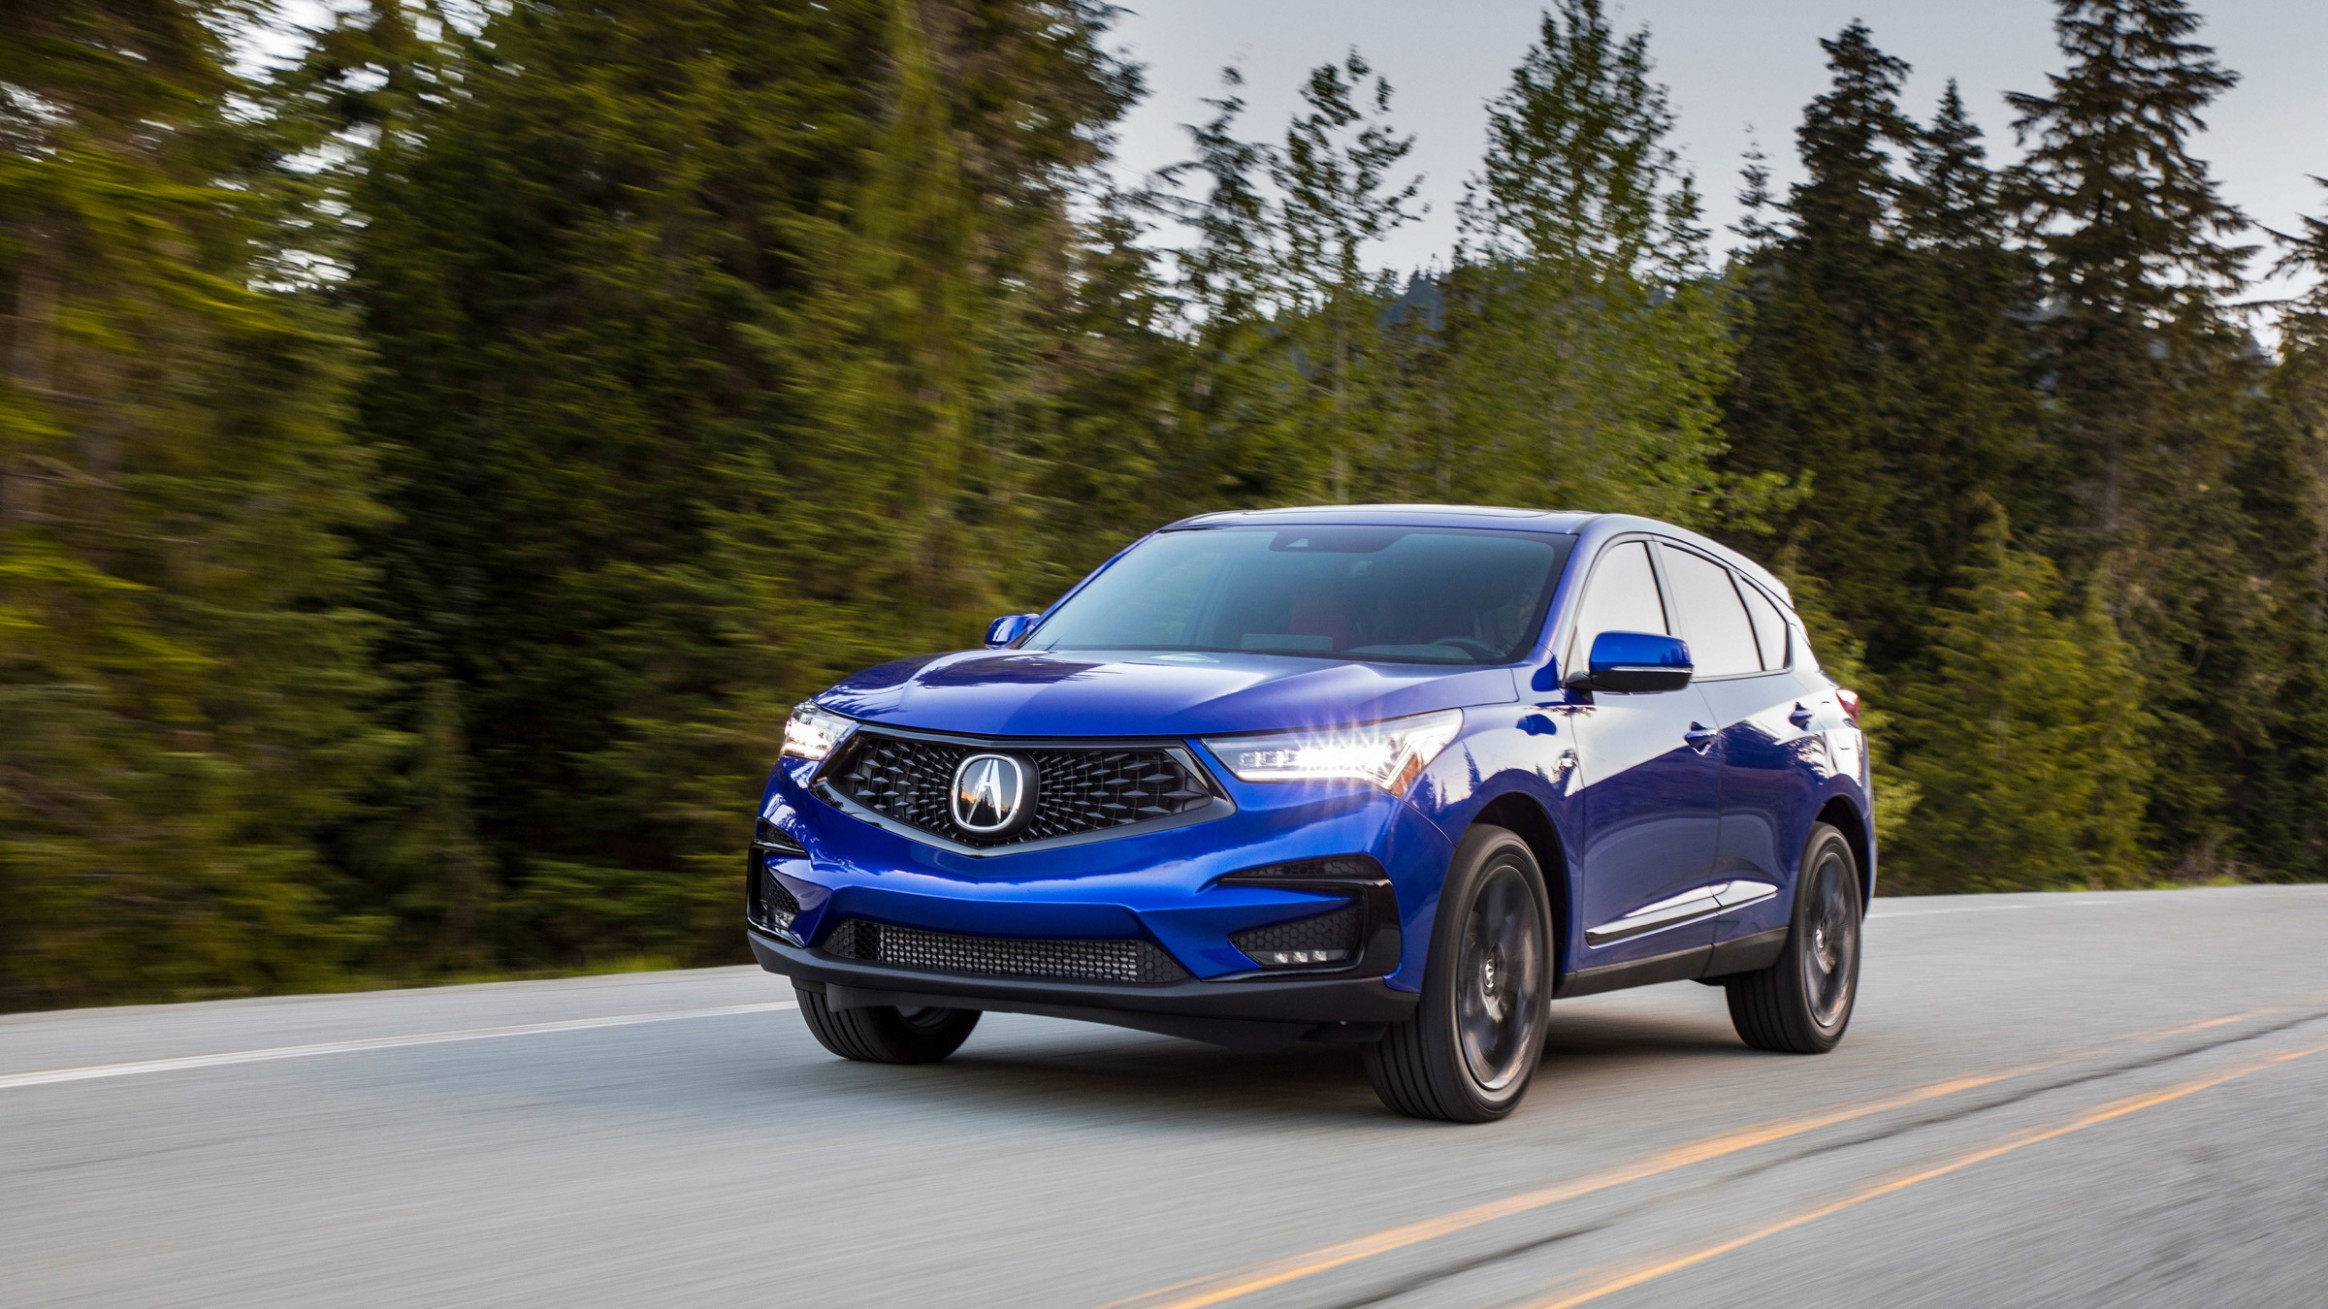 7 Acura RDX Review and Buying Guide | Specs, features, photos ...